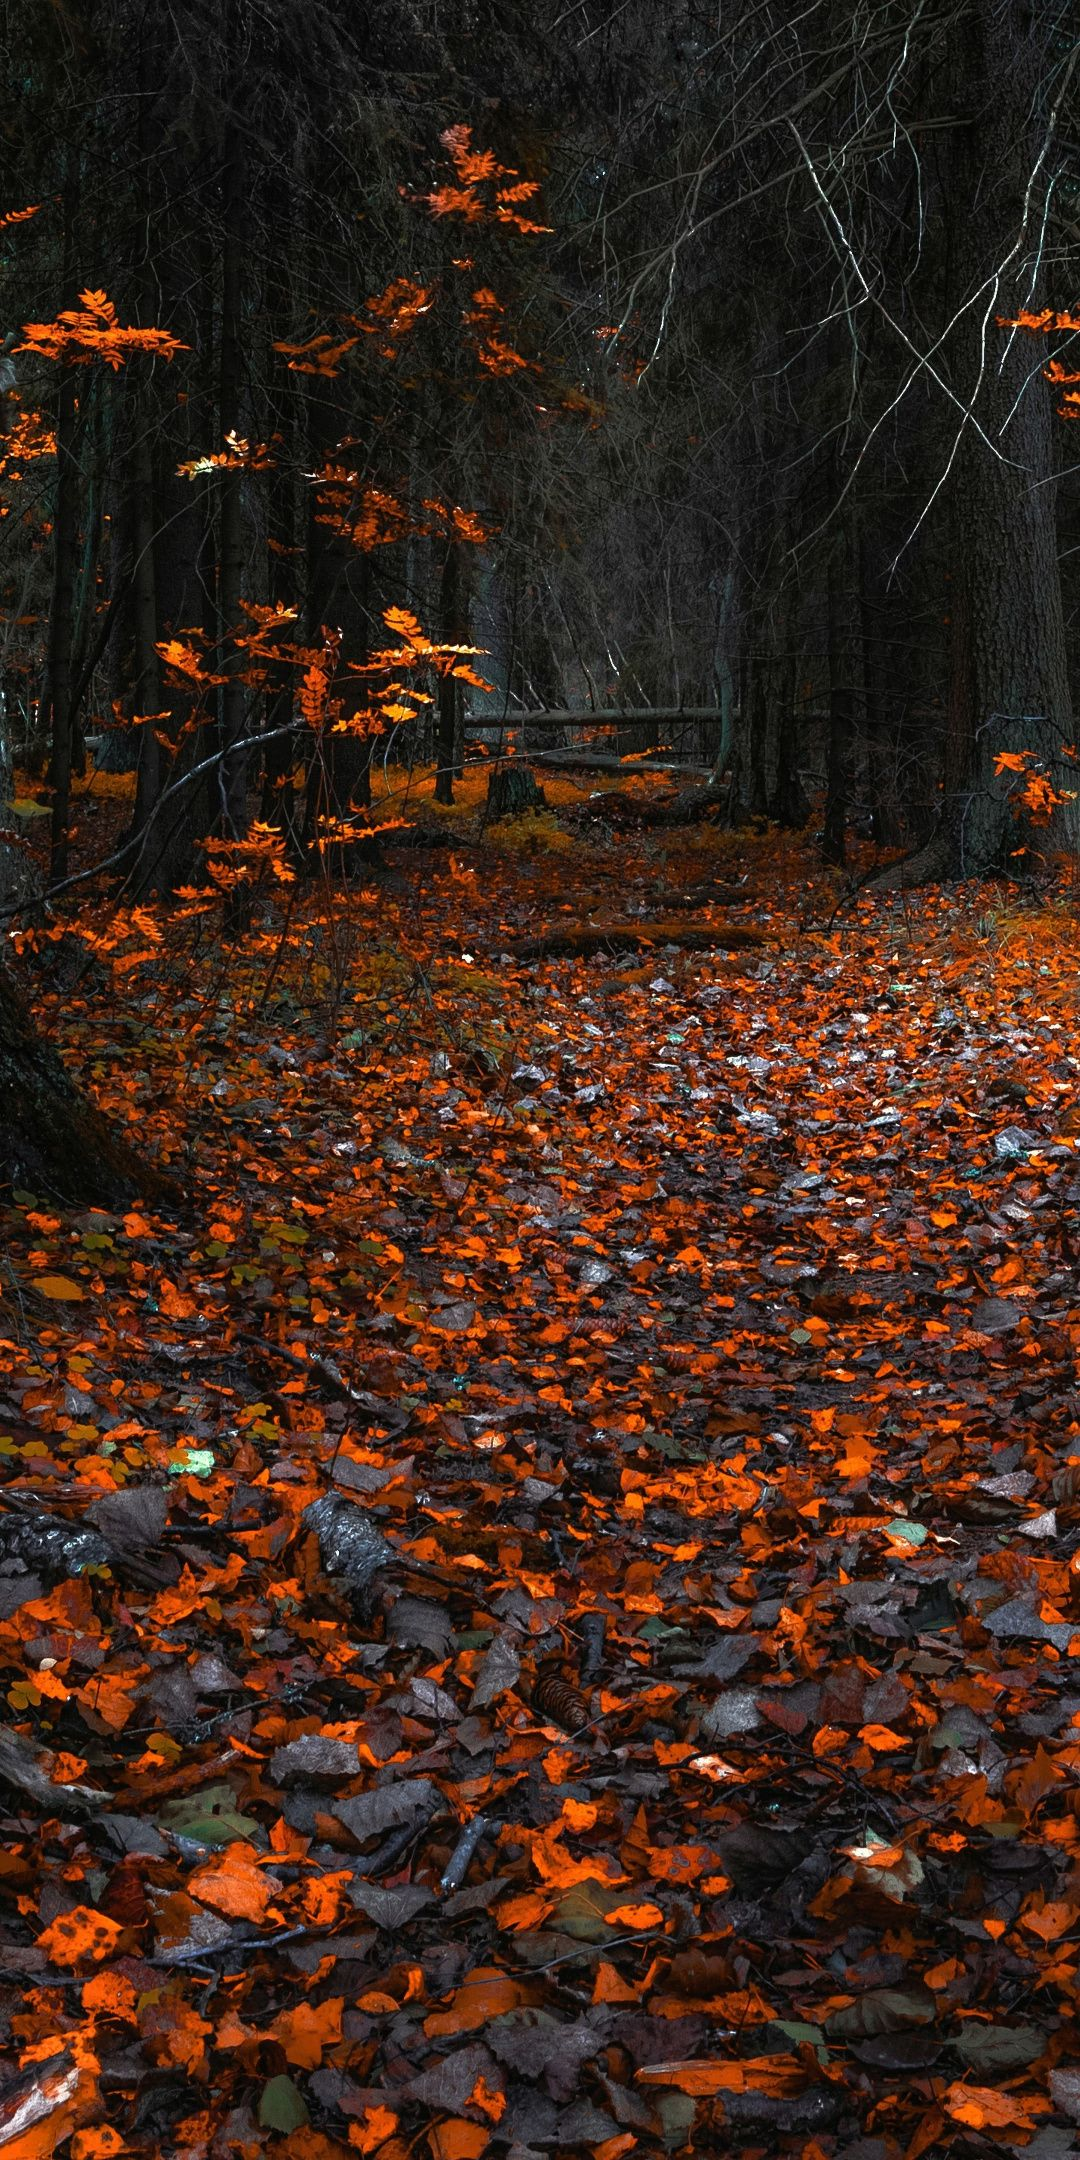 Autumn Orange Leaves Forest Nature 1080x2160 Wallpaper Autumn Leaves Wallpaper Cute Fall Wallpaper Halloween Wallpaper Iphone